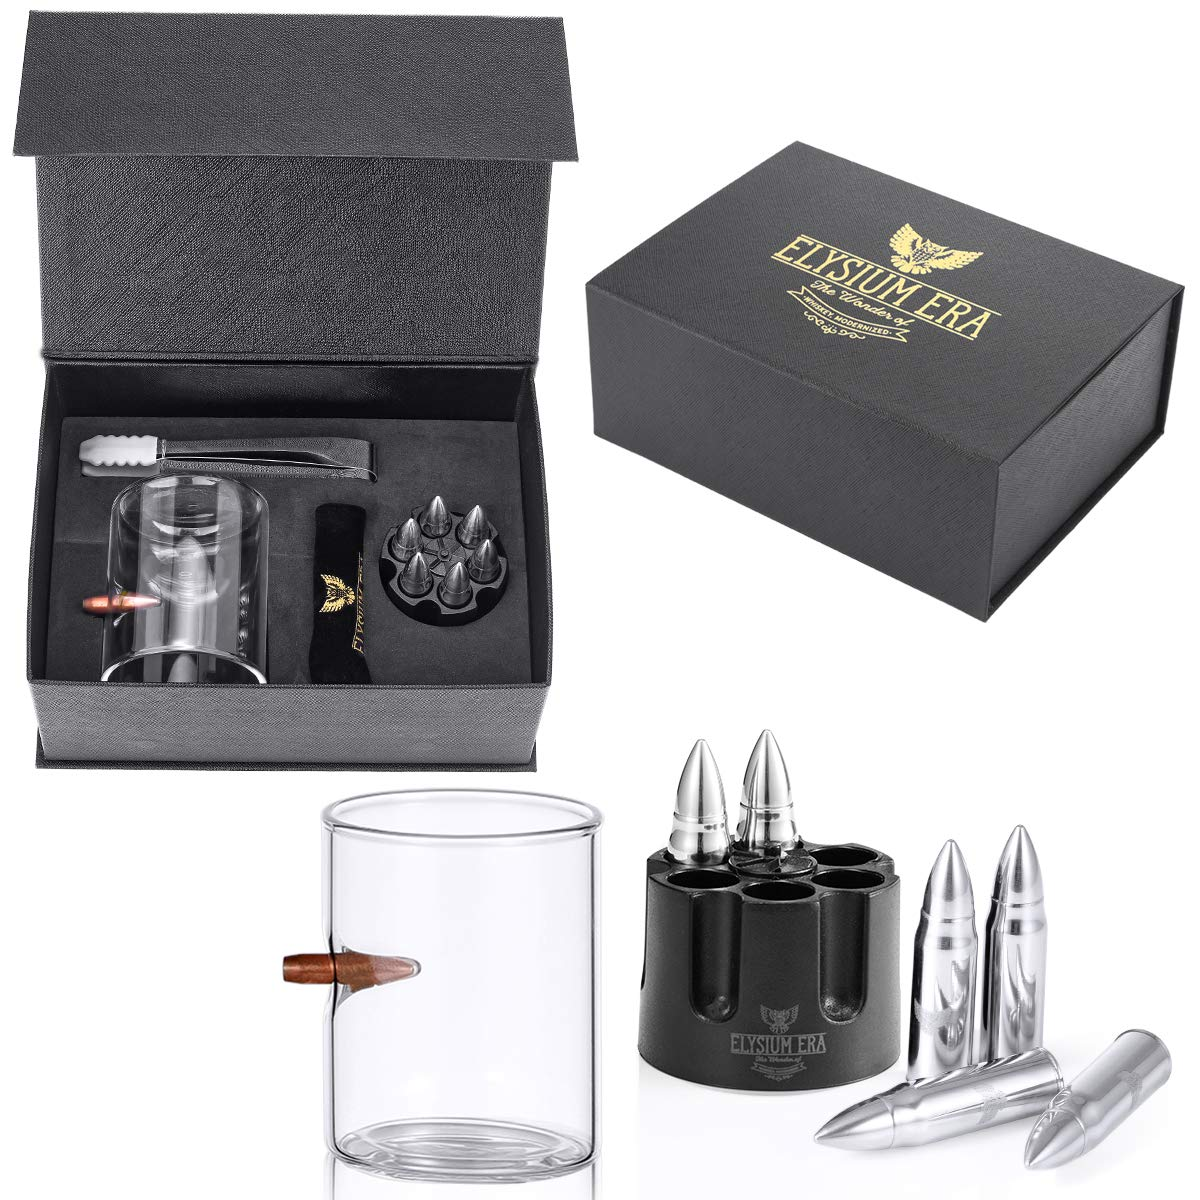 Whiskey Stones Gift Set - .308 Real Bullet embedded hand-blown Whiskey Glass, 6 XL Reusable Stainless Steel Bullet Shaped Chillers| Perfect Whiskey Gifts, Bourbon Tumblers, for Whisky Lovers by Elysium Era